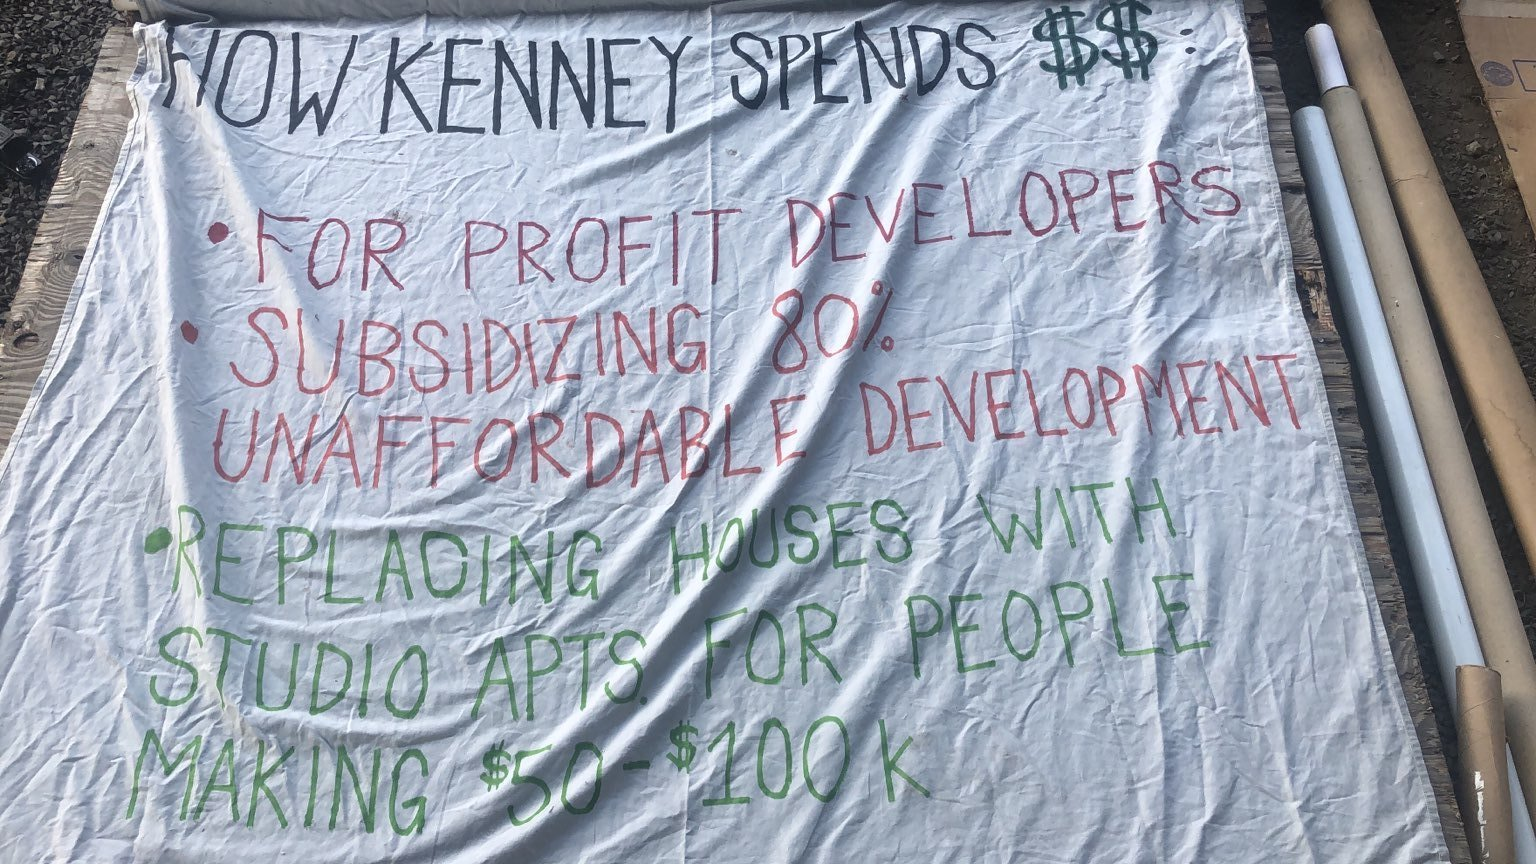 """Sign painted on a sheet that reads: """"How Kenney Spends $$: * For Profit Developers. * Subsidizing 80% Unaffordable Development. * Replacing Houses with Studio Apartments for People Making $50 - 100K"""